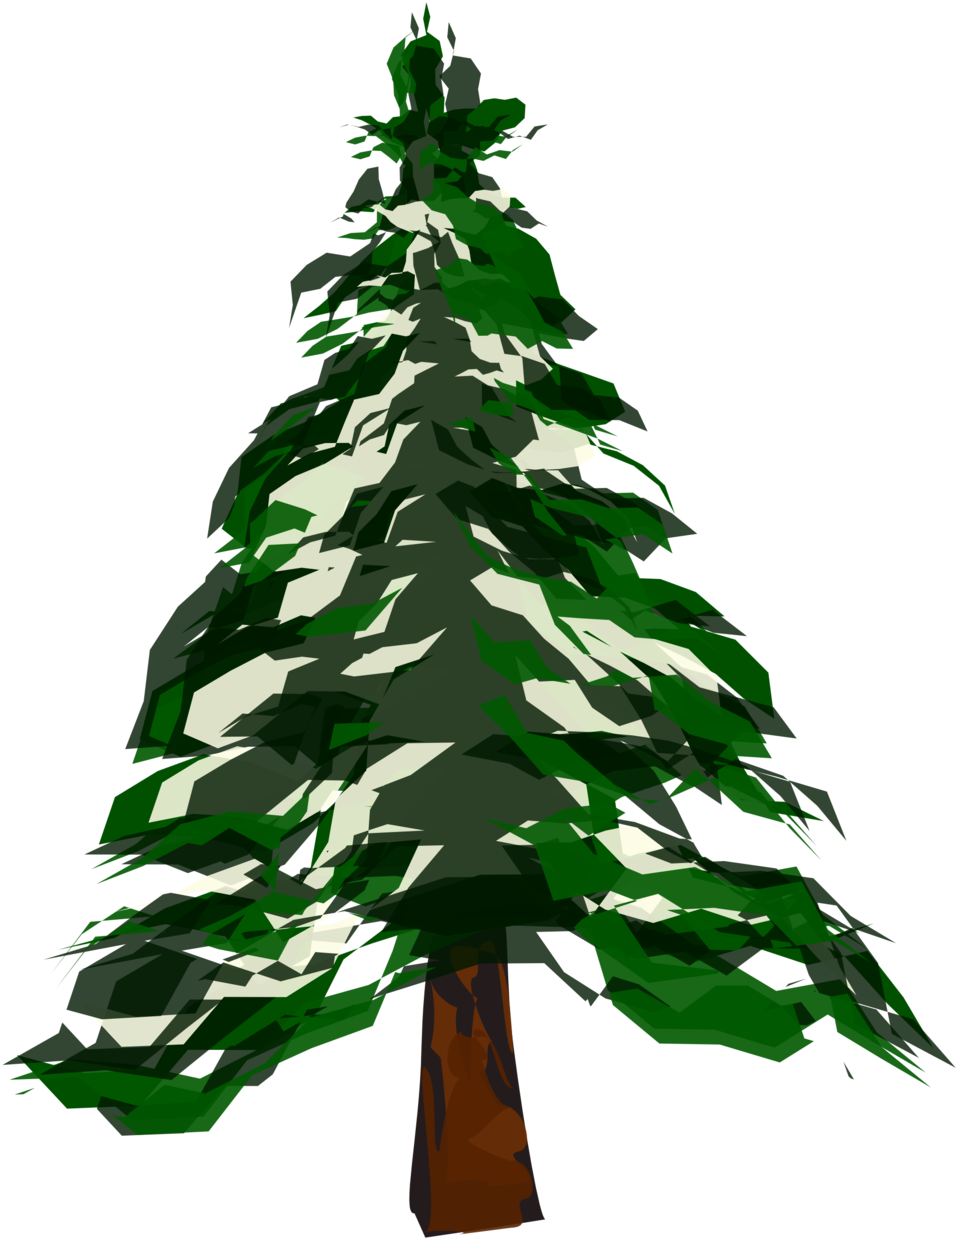 Winter tree clipart free png Public Domain Clip Art Image | Winter Tree 1 | ID: 13529506814097 ... png